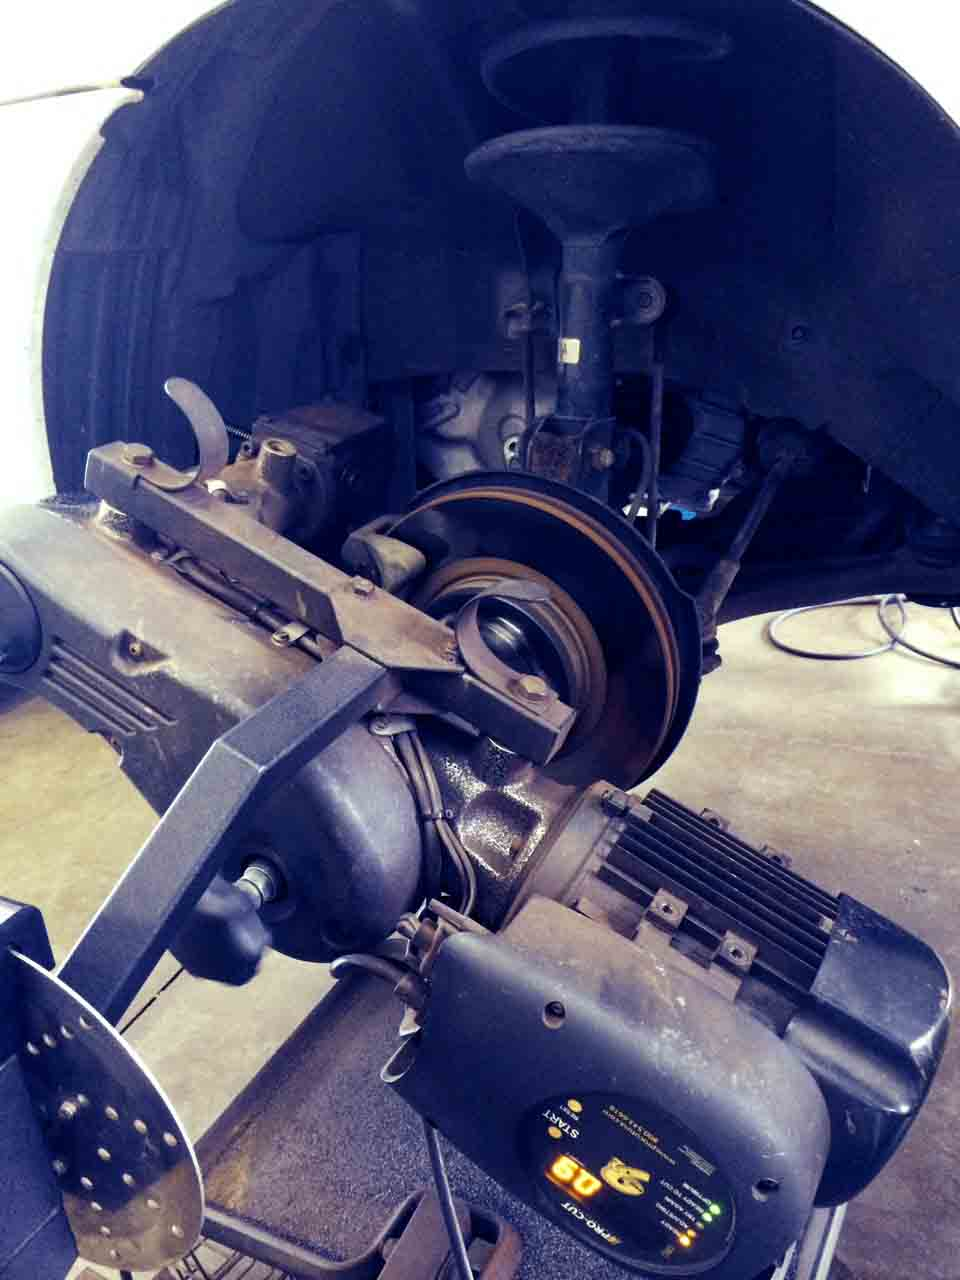 """Car brake lathe creates a more """"true surface"""" than bench lathes thus creating a longer brake life. Small details like this add up to value that pays off over the life of your vehicle.."""